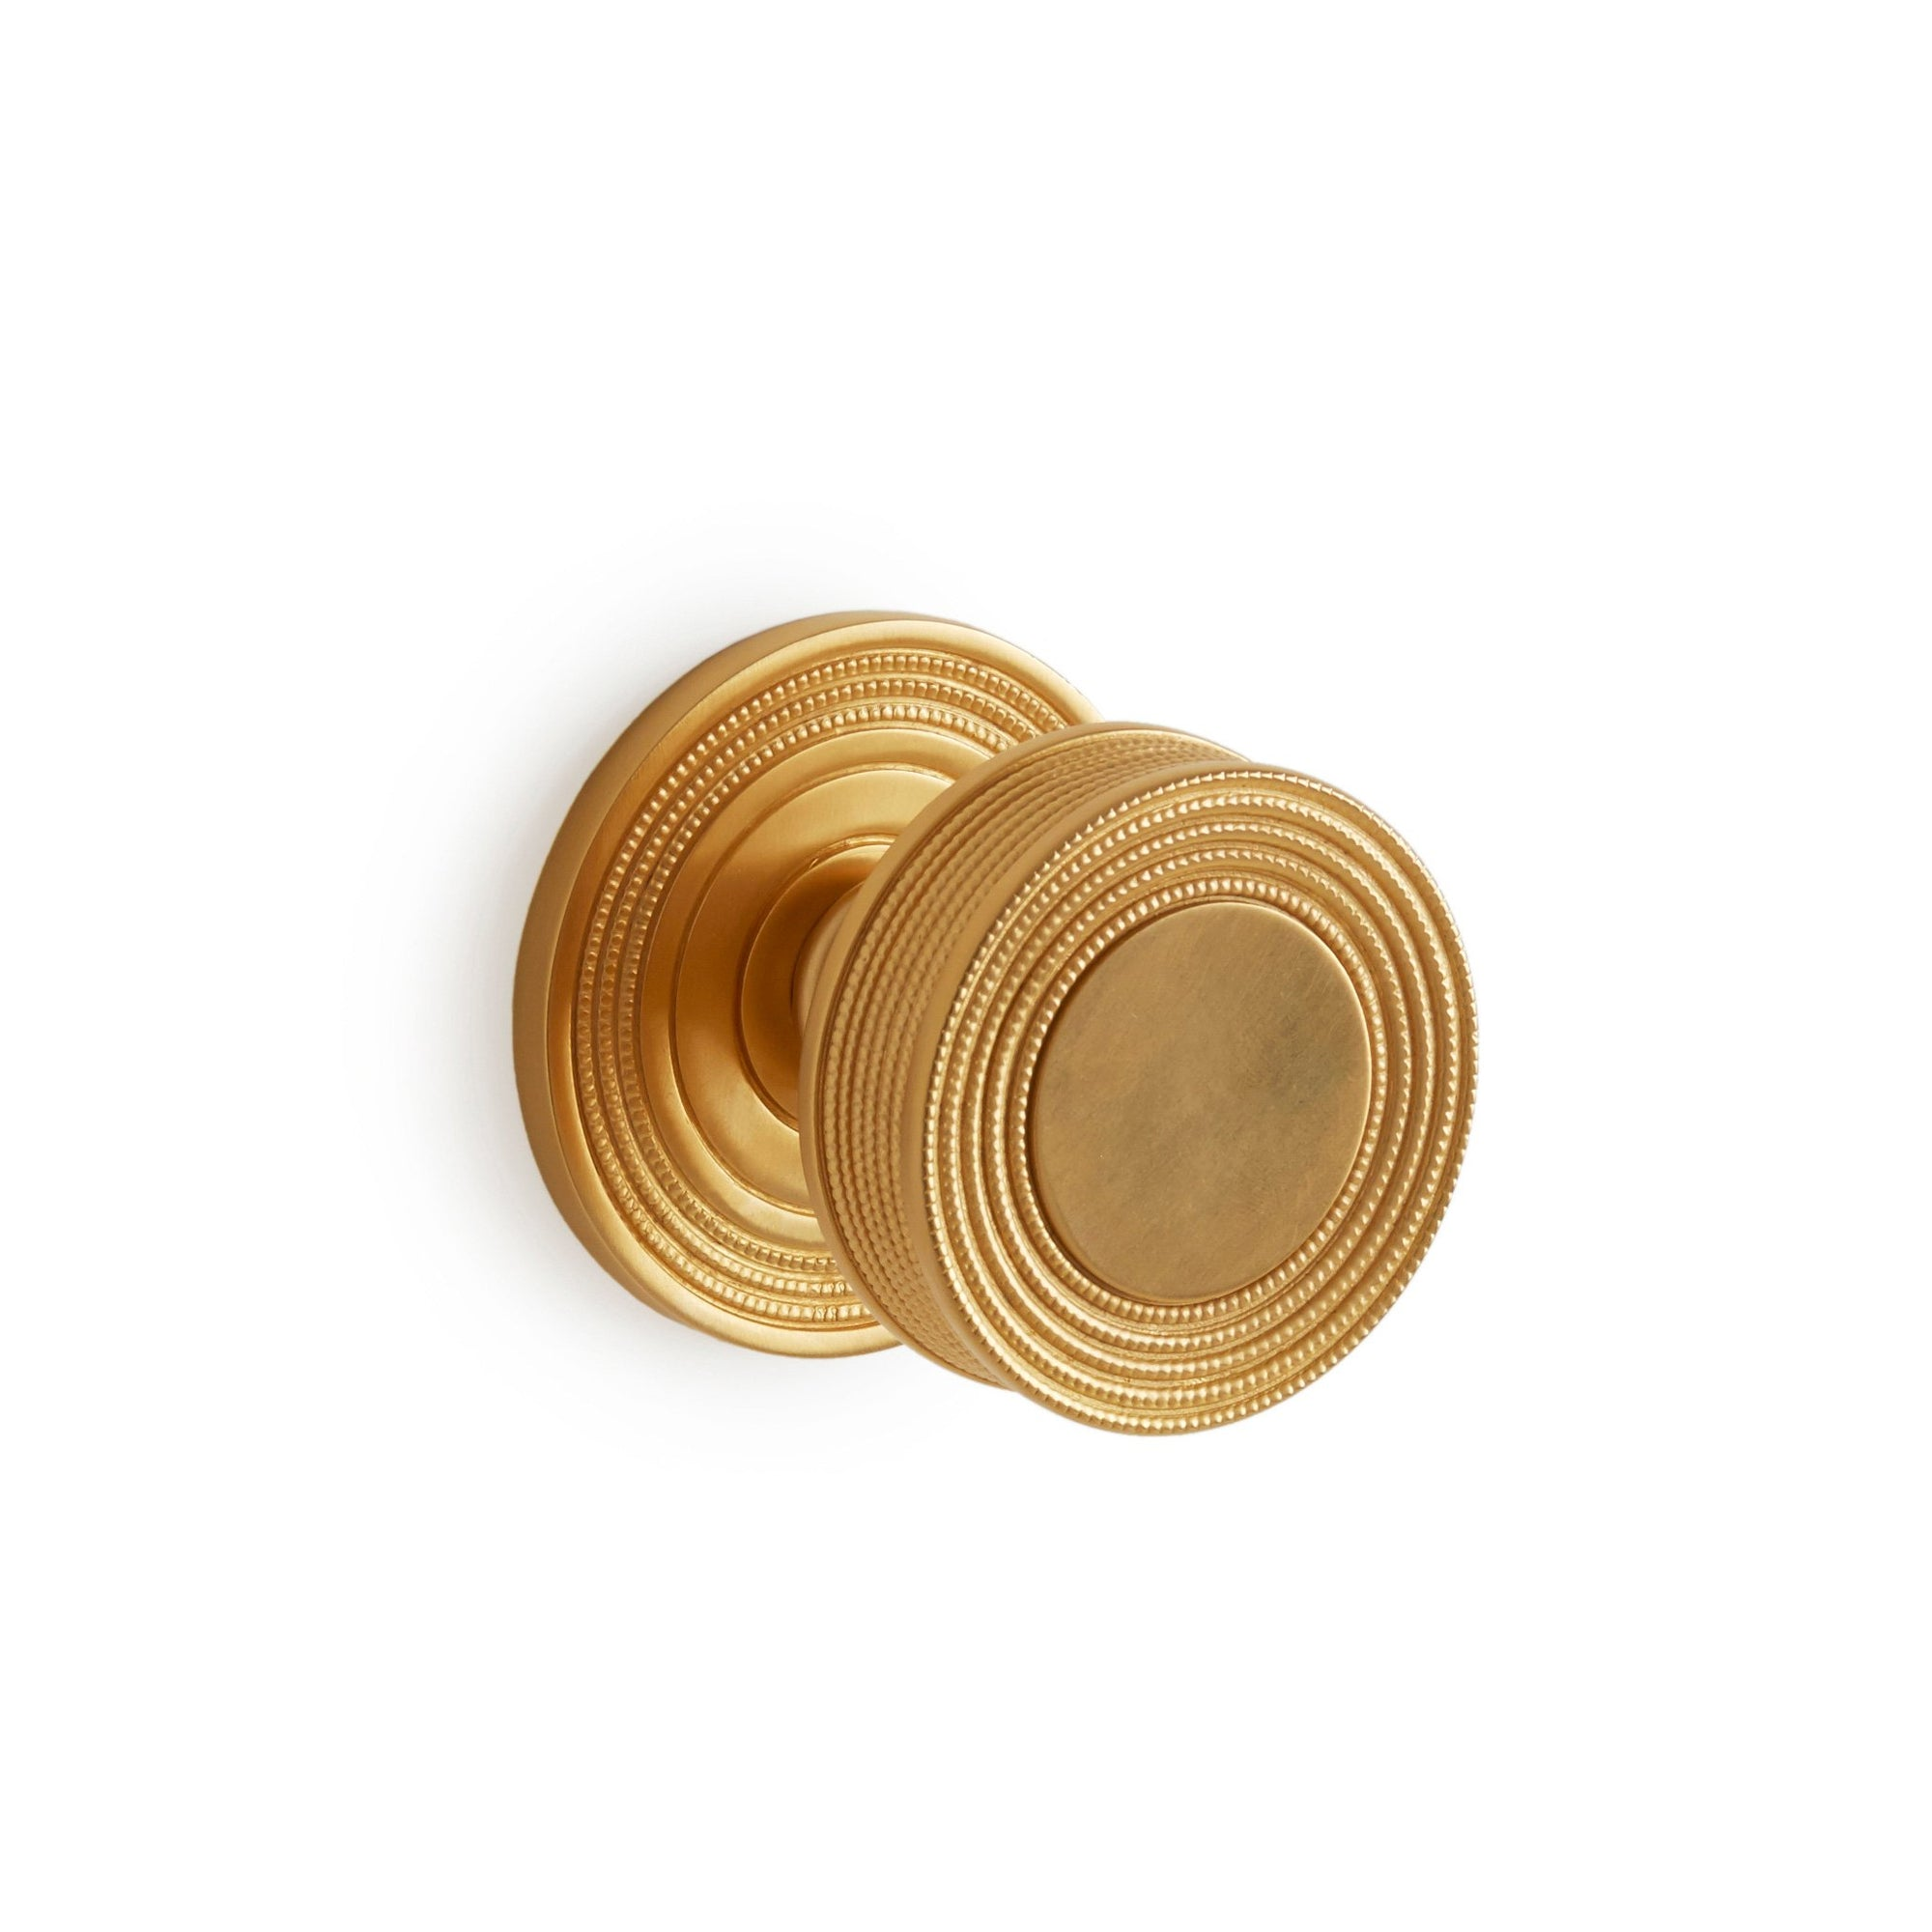 1033DOR-3-GP Sherle Wagner International Concentric Circles Large Door Knob in Gold Plate metal finish